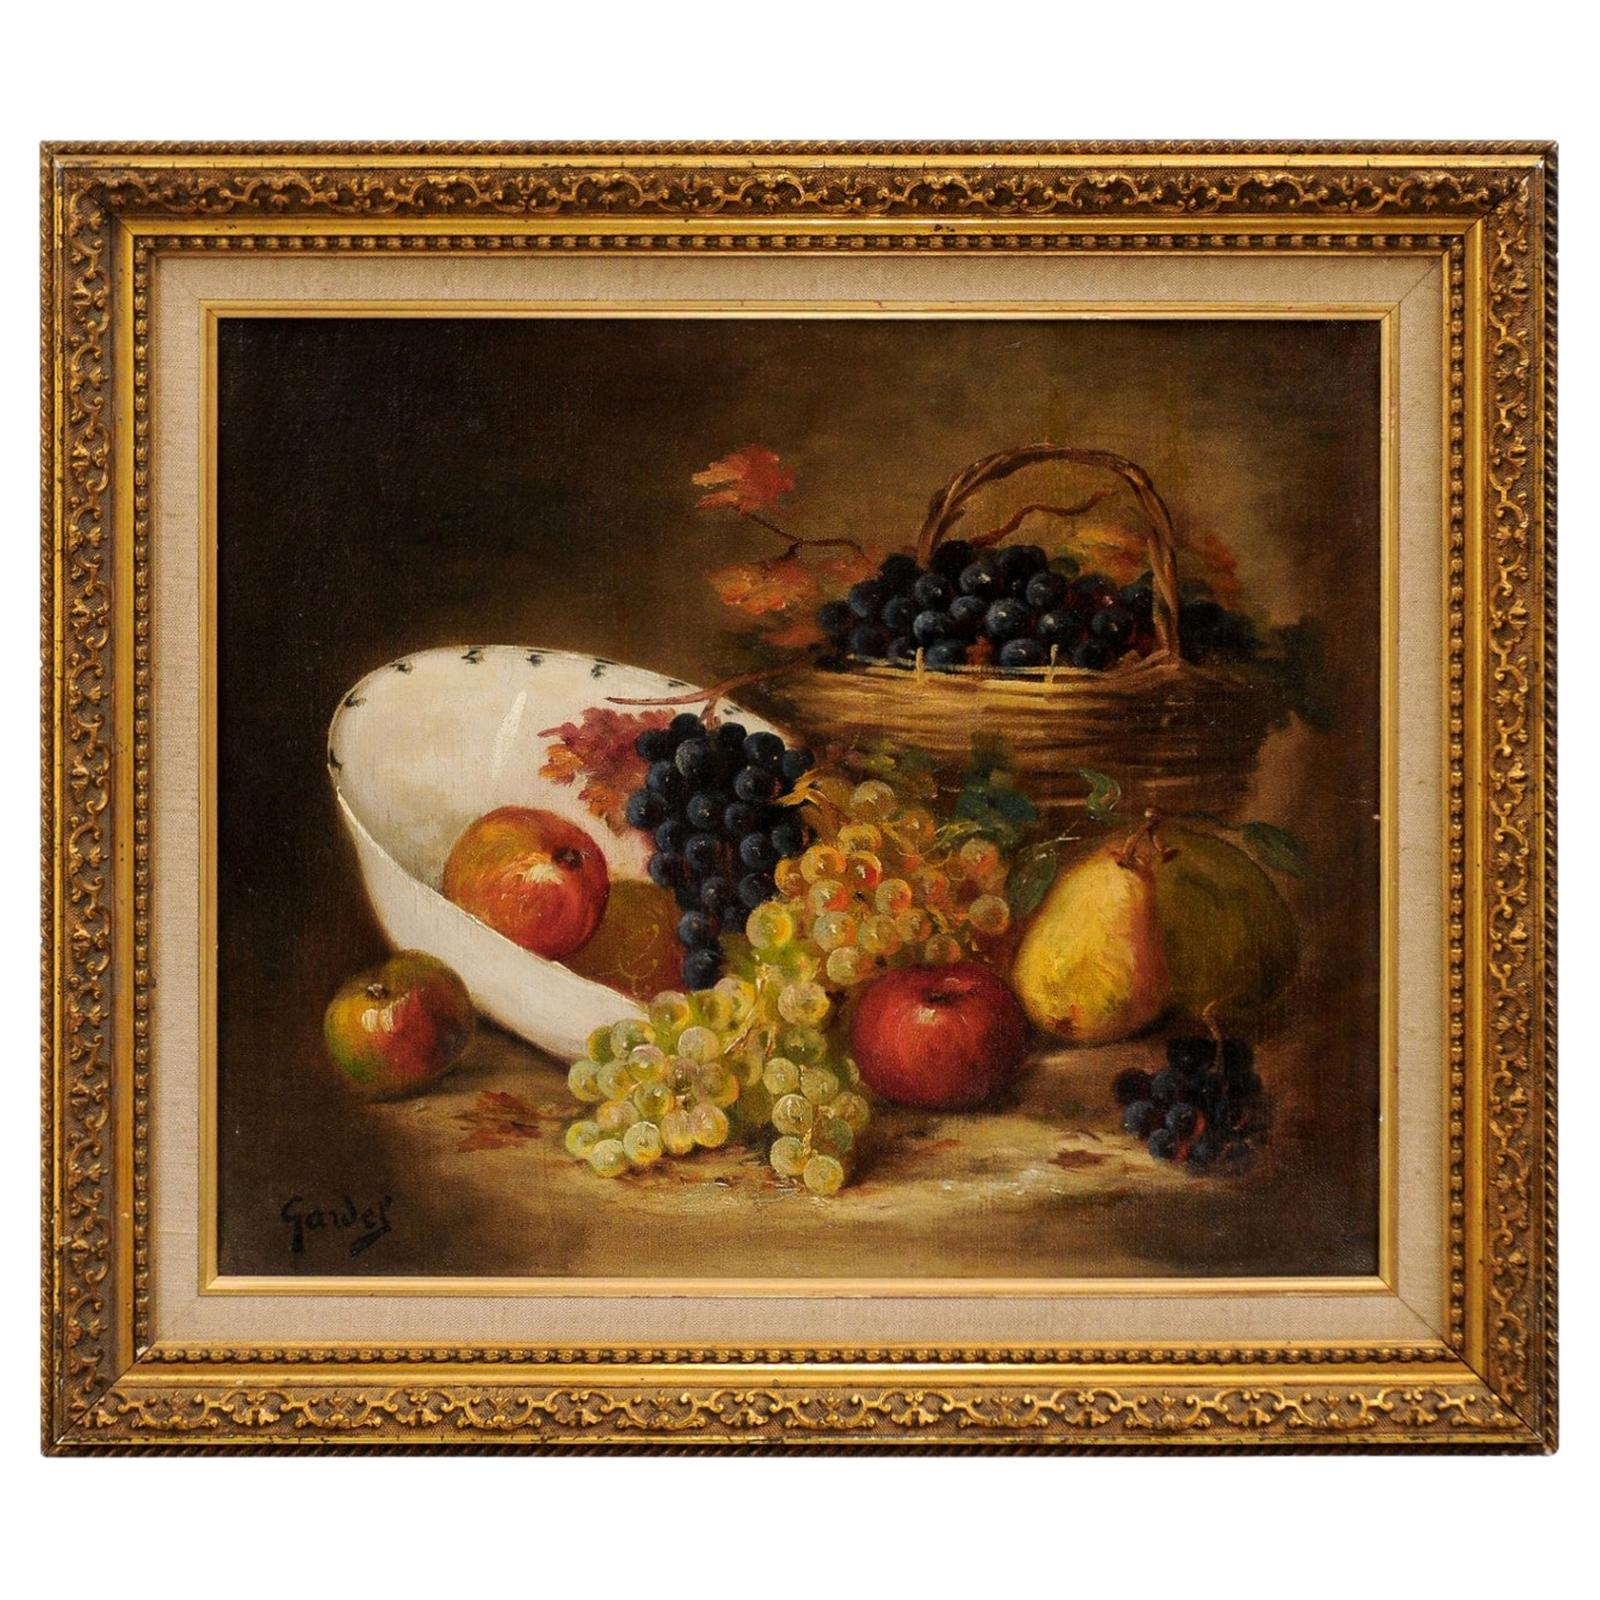 French 19th Century Oil on Canvas Framed Still-Life Painting Depicting Fruits